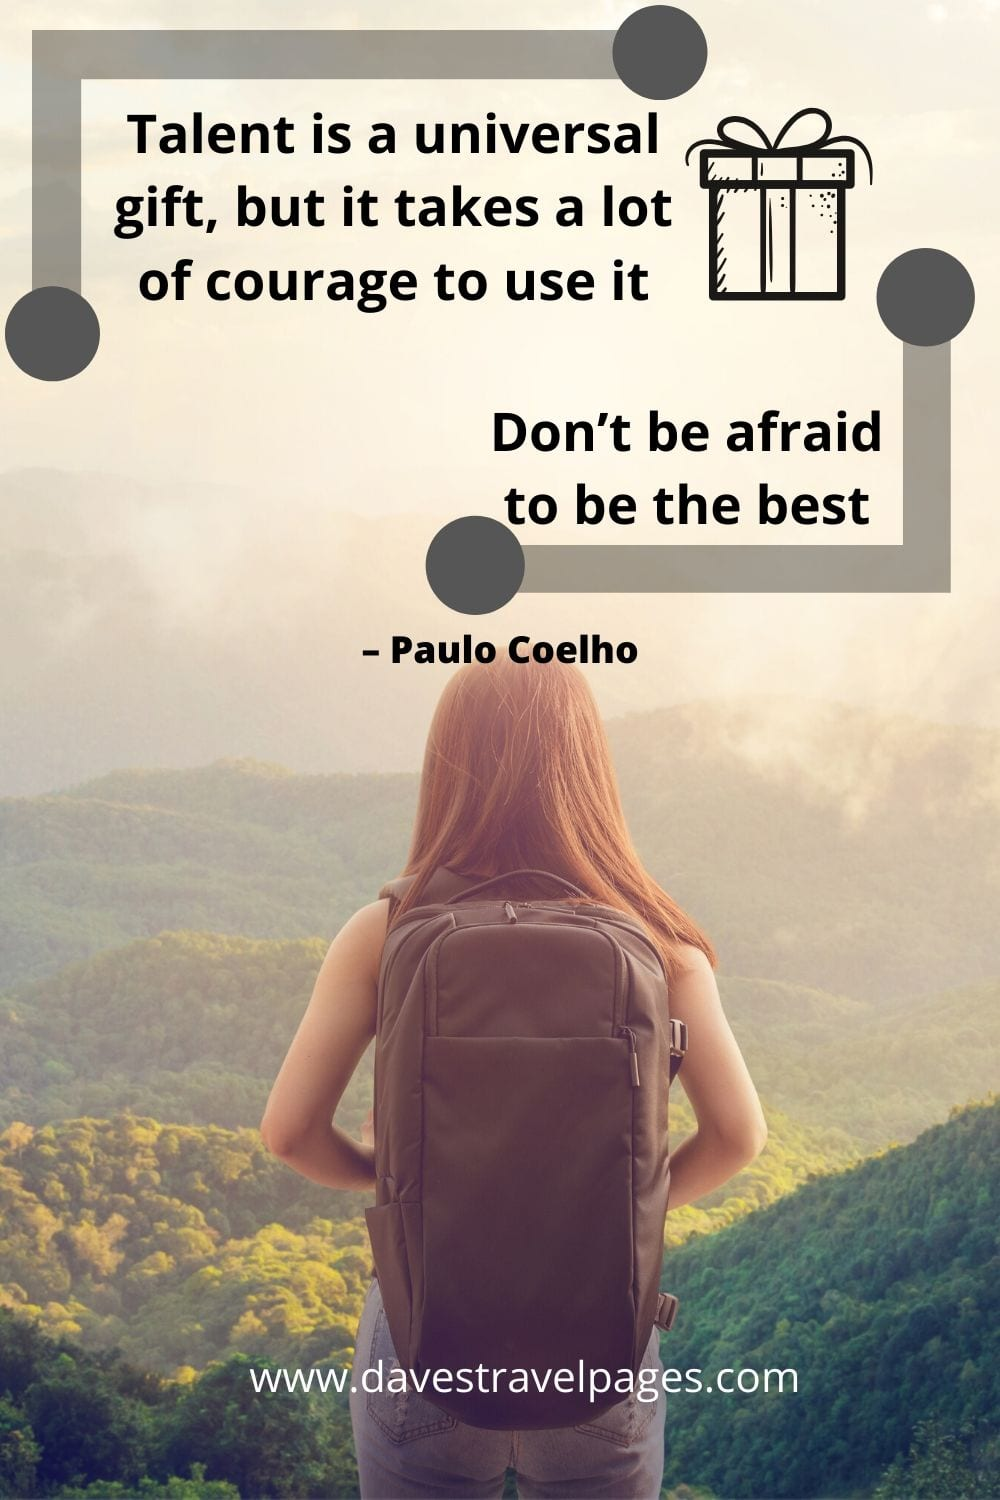 """Talent is a universal gift, but it takes a lot of courage to use it. Don't be afraid to be the best."" – Quotes about being the best version of yourself by Paulo Coelho"